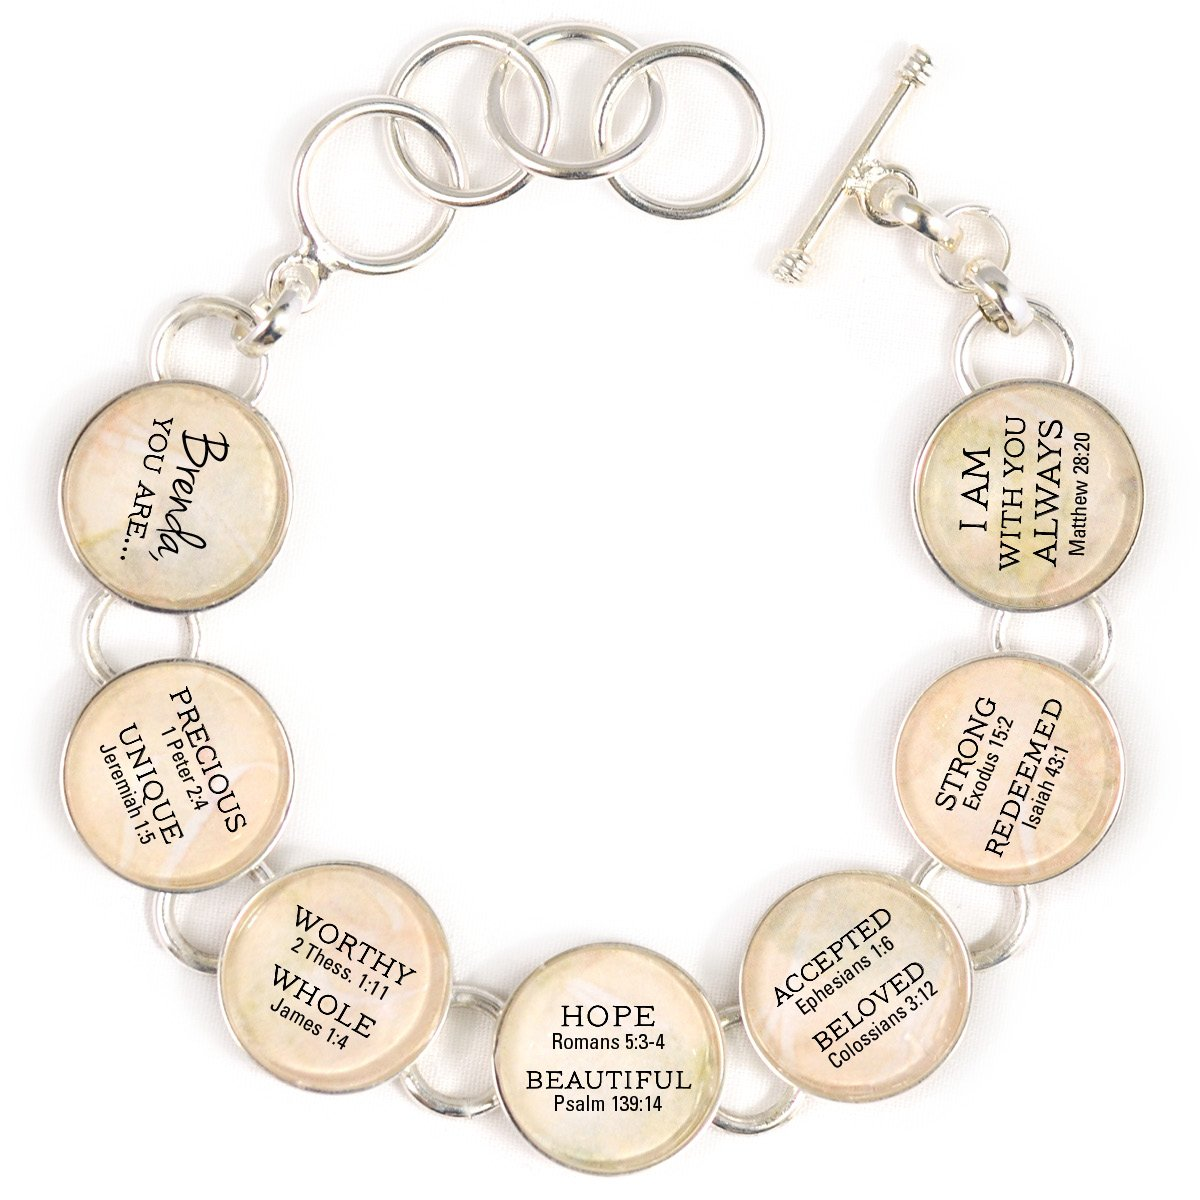 YOU ARE... Beautiful, Strong, Redeemed - Personalized Silver-Plated Scripture Charm Bracelet - 7 Charms, Large (7.5 - 8.5'')